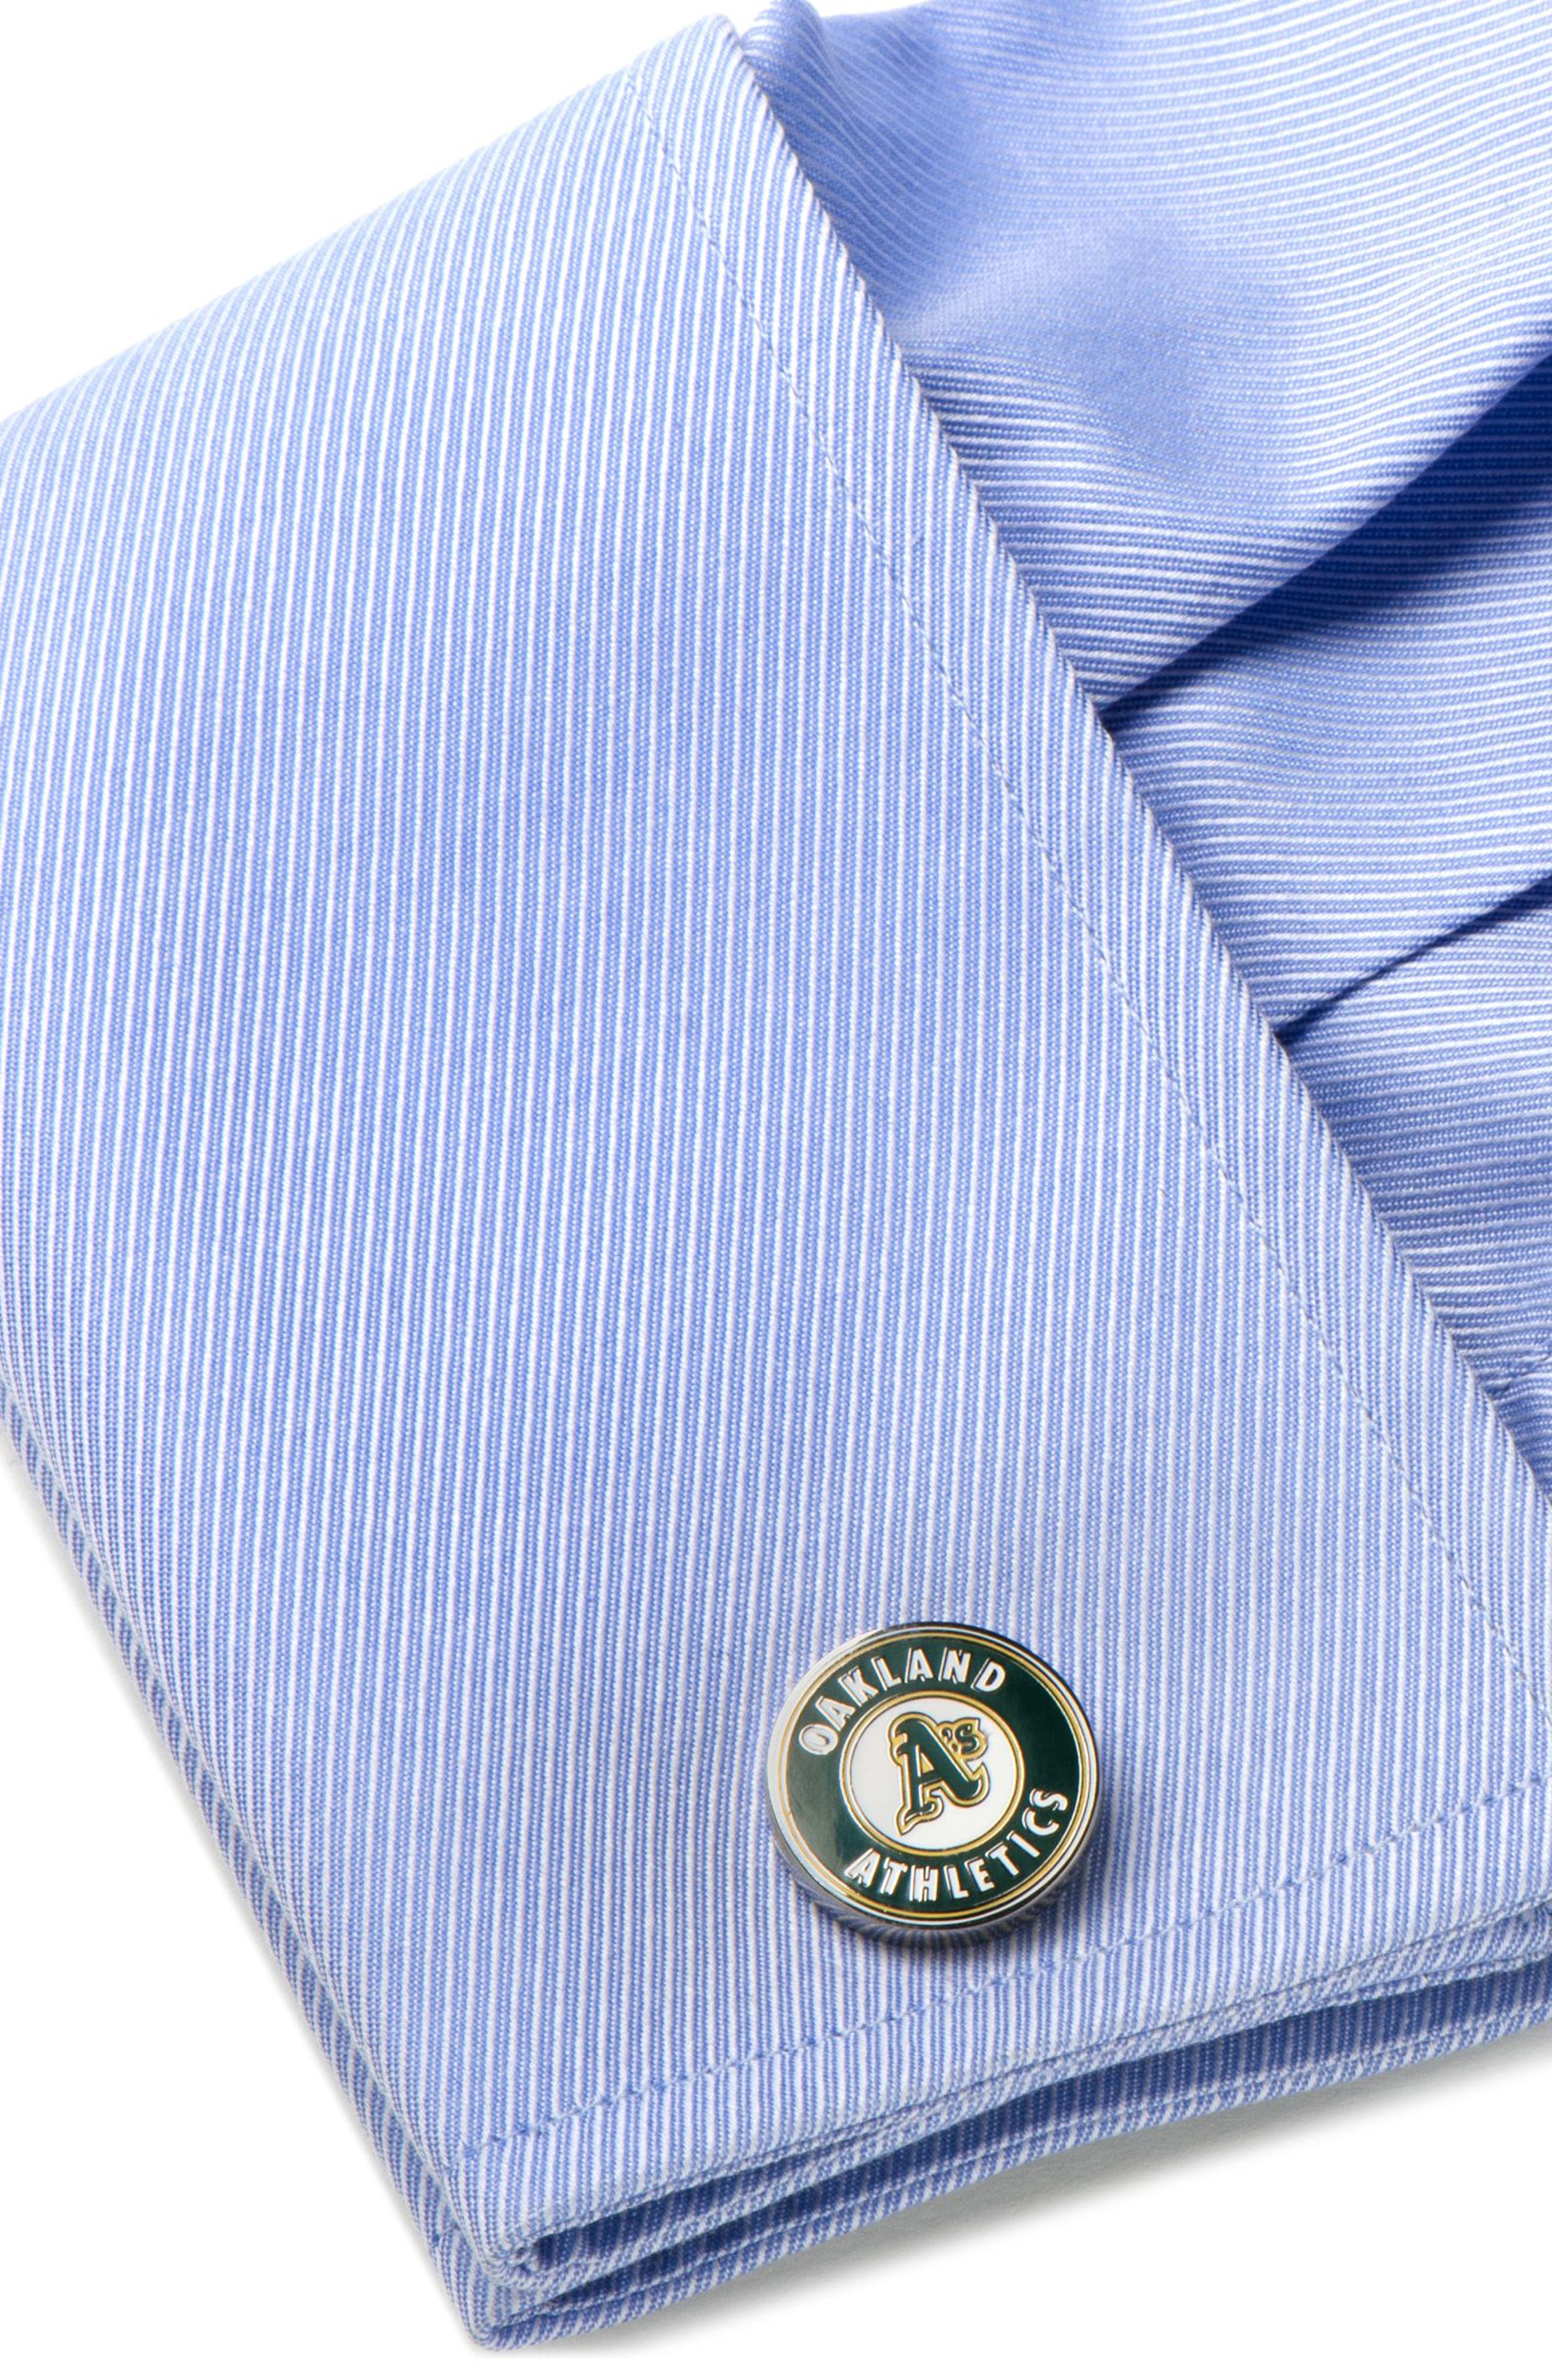 Oakland Athletics Cuff Links,                             Alternate thumbnail 3, color,                             Green